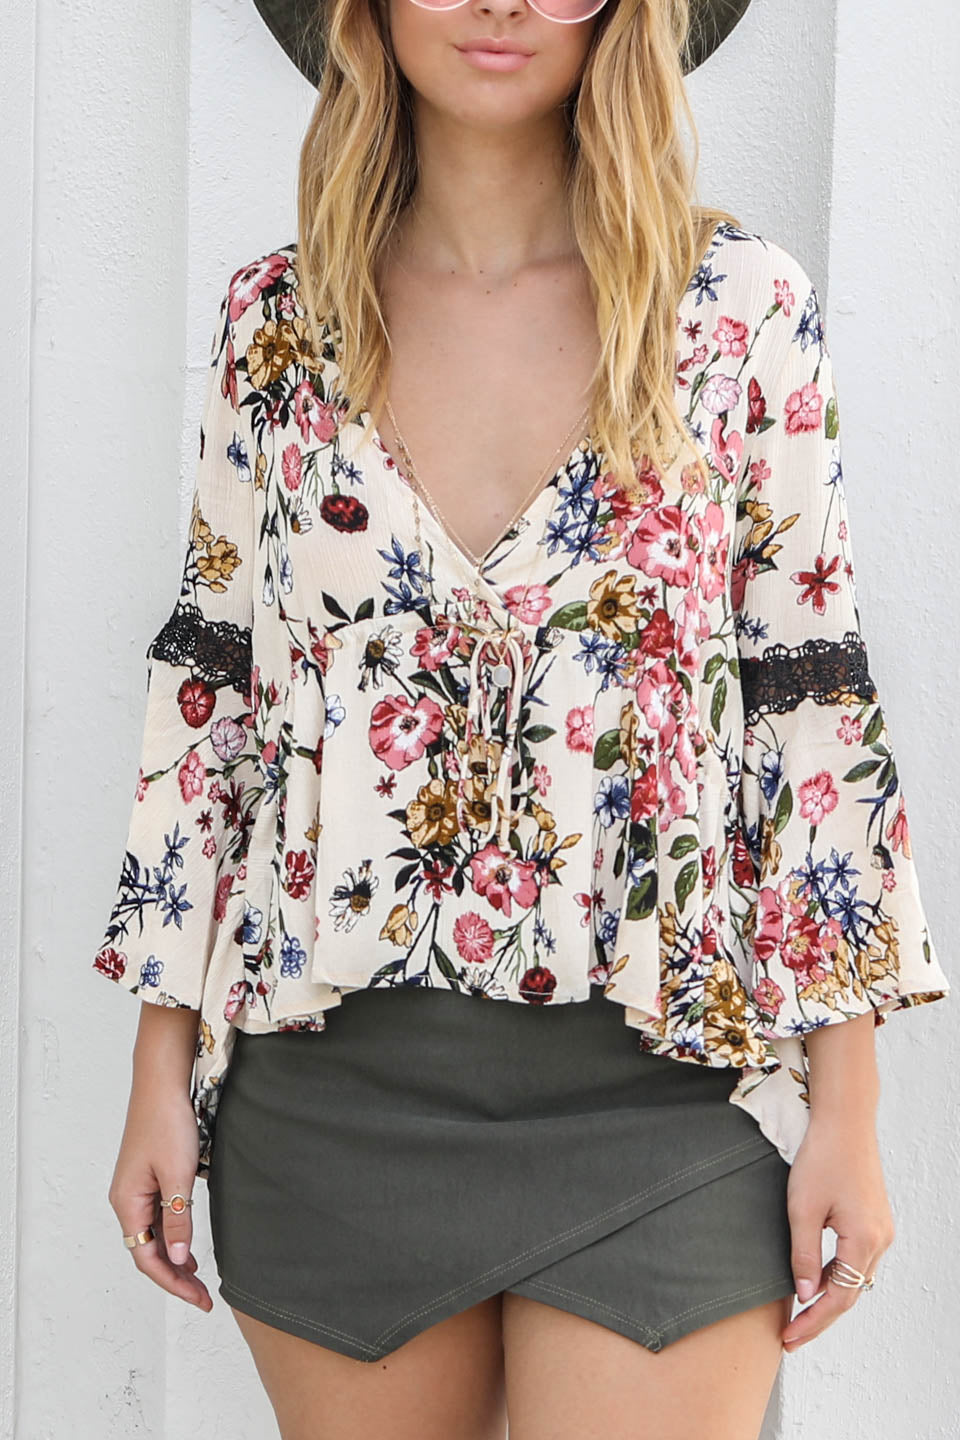 Falling Again Nude Floral Peasant Blouse - Amazing Lace